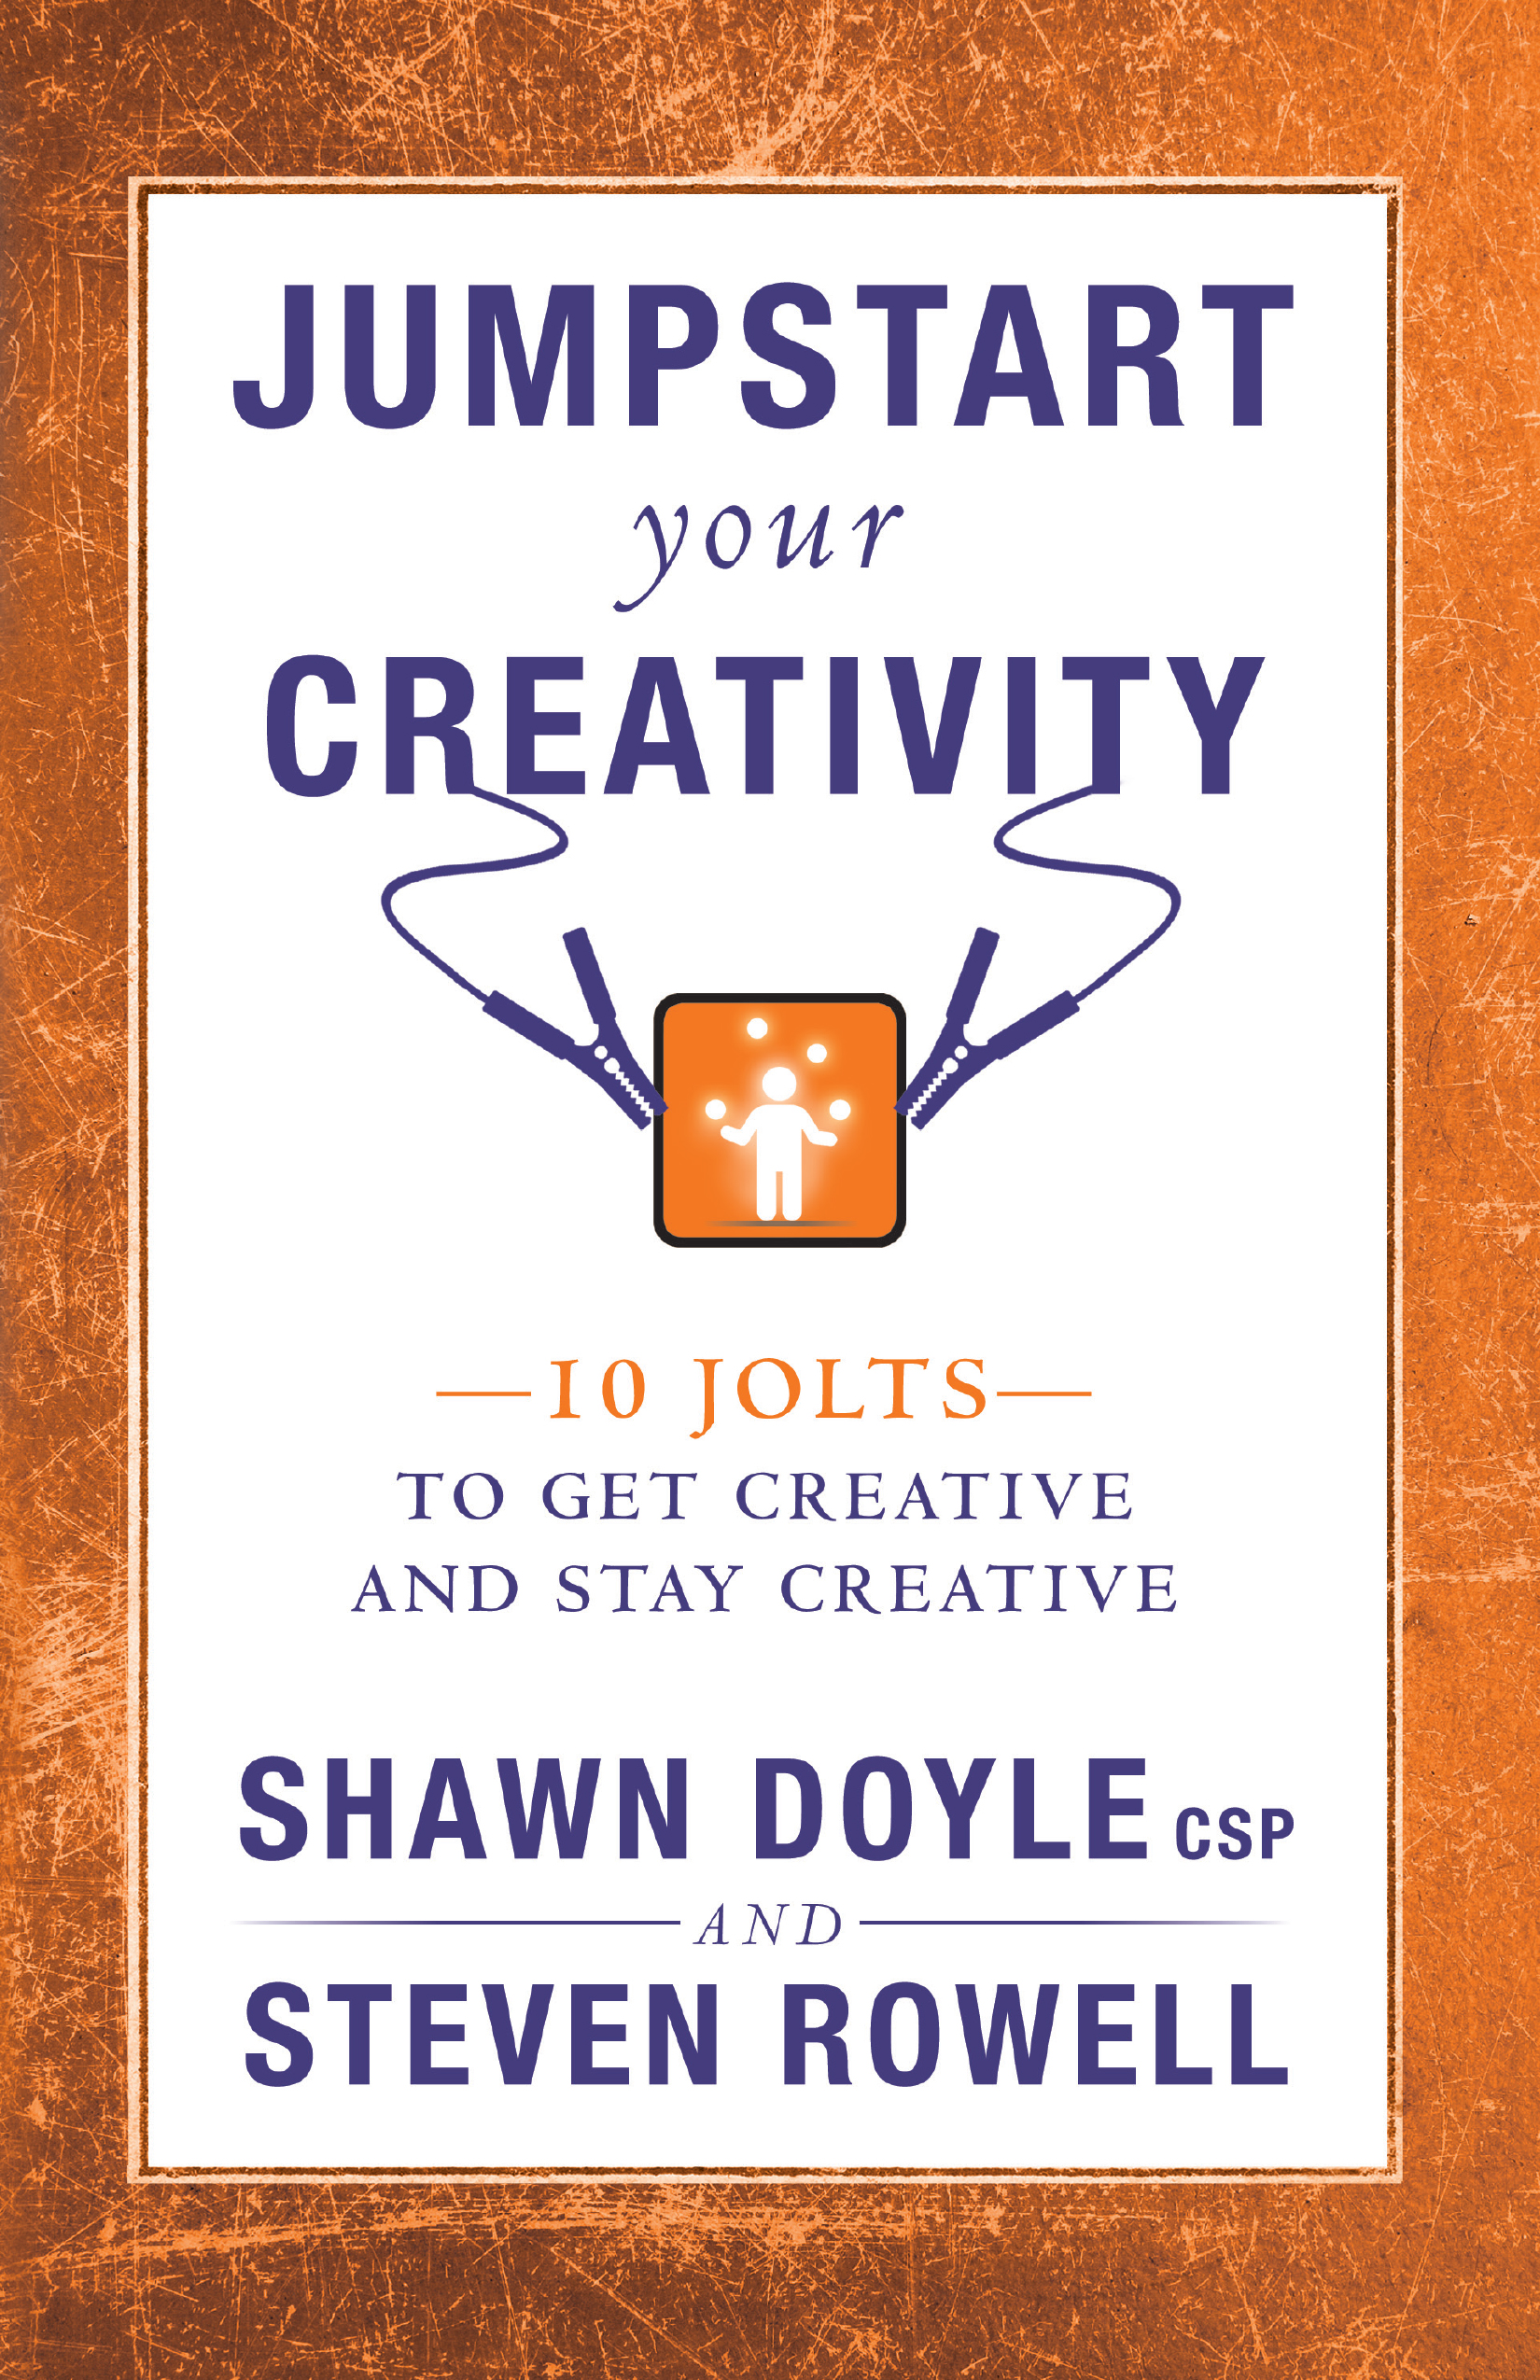 Jumpstart Your Creativity - Shawn Doyle CSP and Steven Rowell